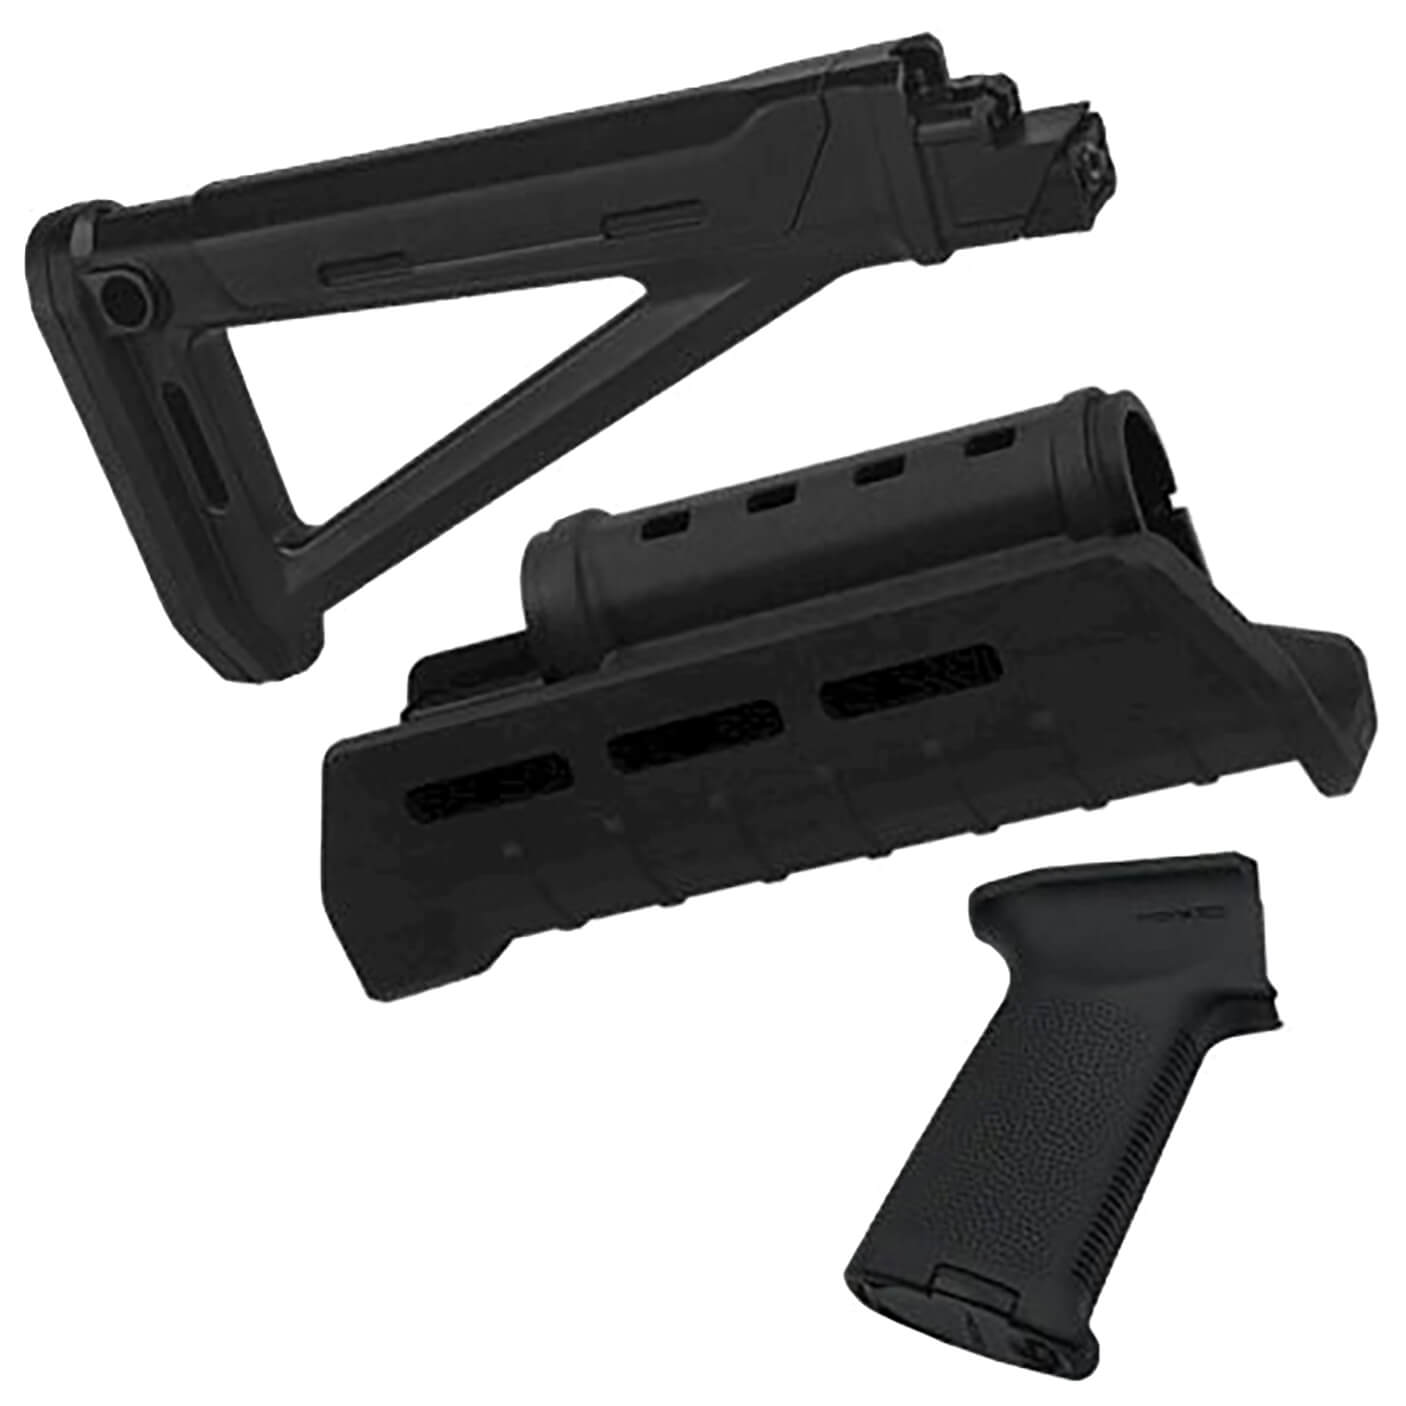 Picture for category AK 47/74 Accessories